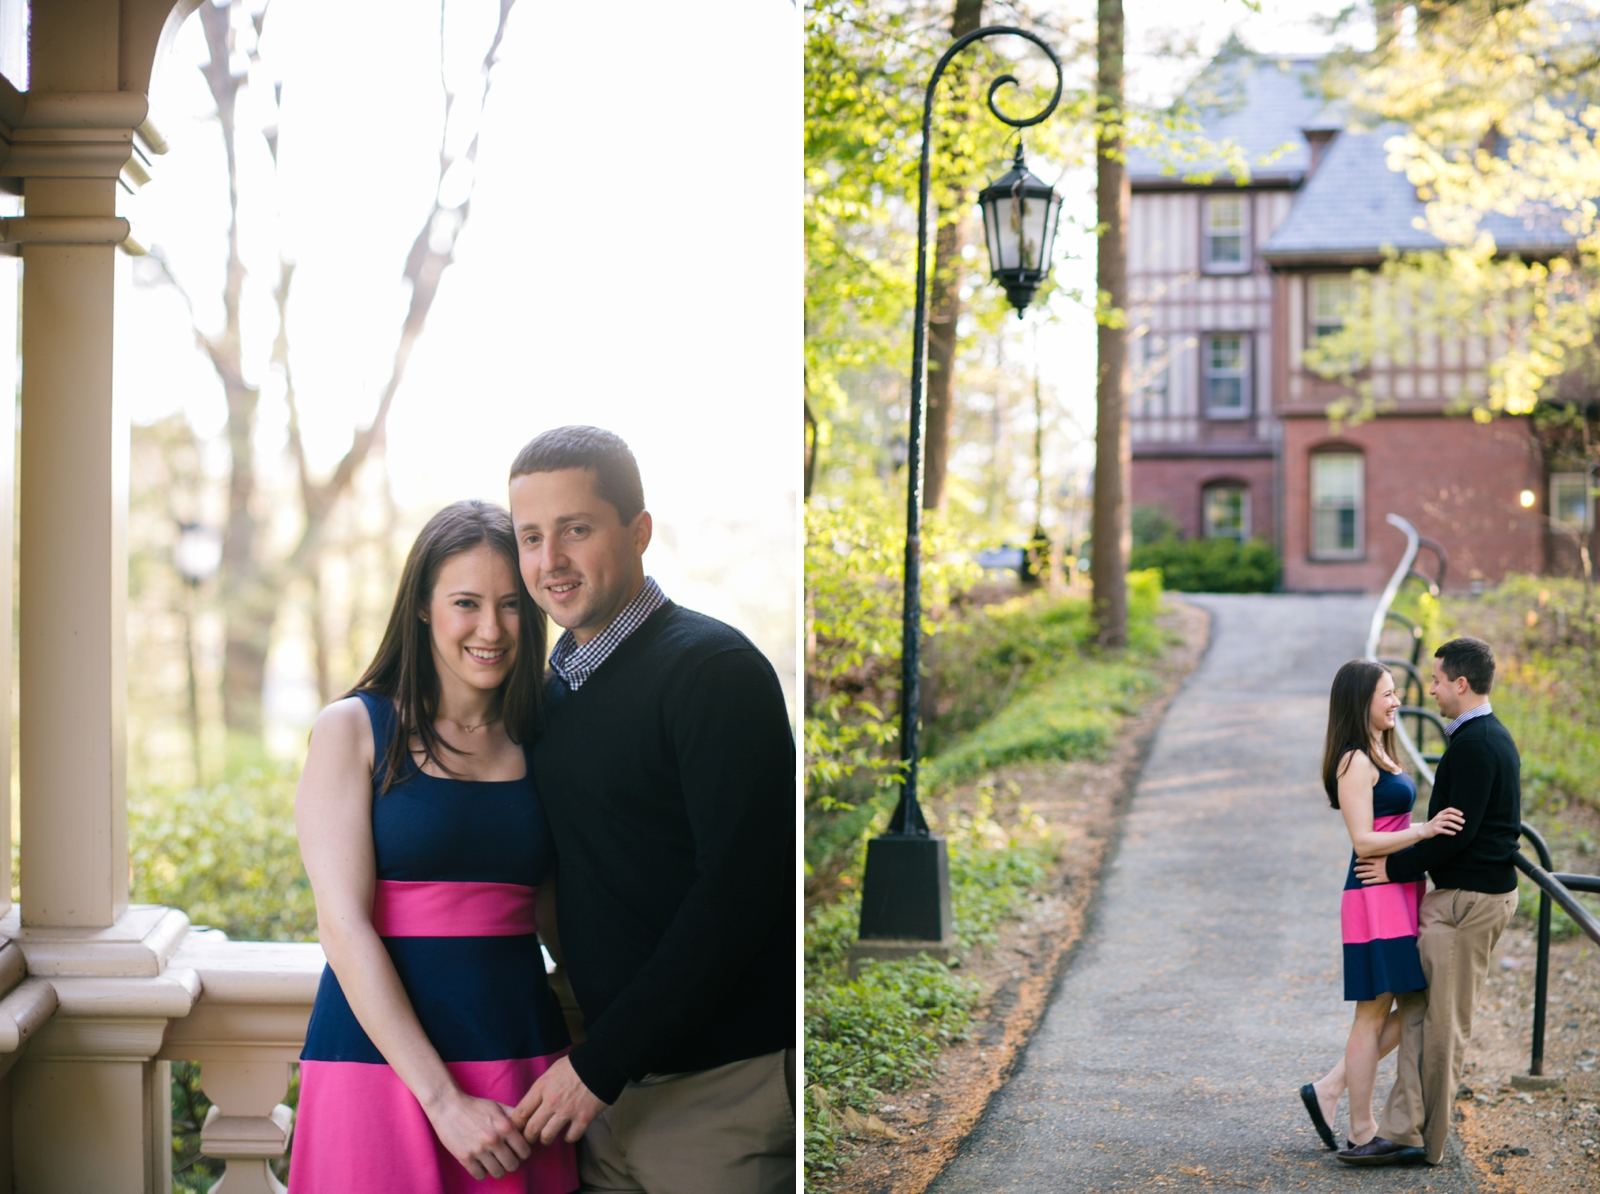 Casual engagement portraits of couple holding hands and walking together through Wellesley campus.